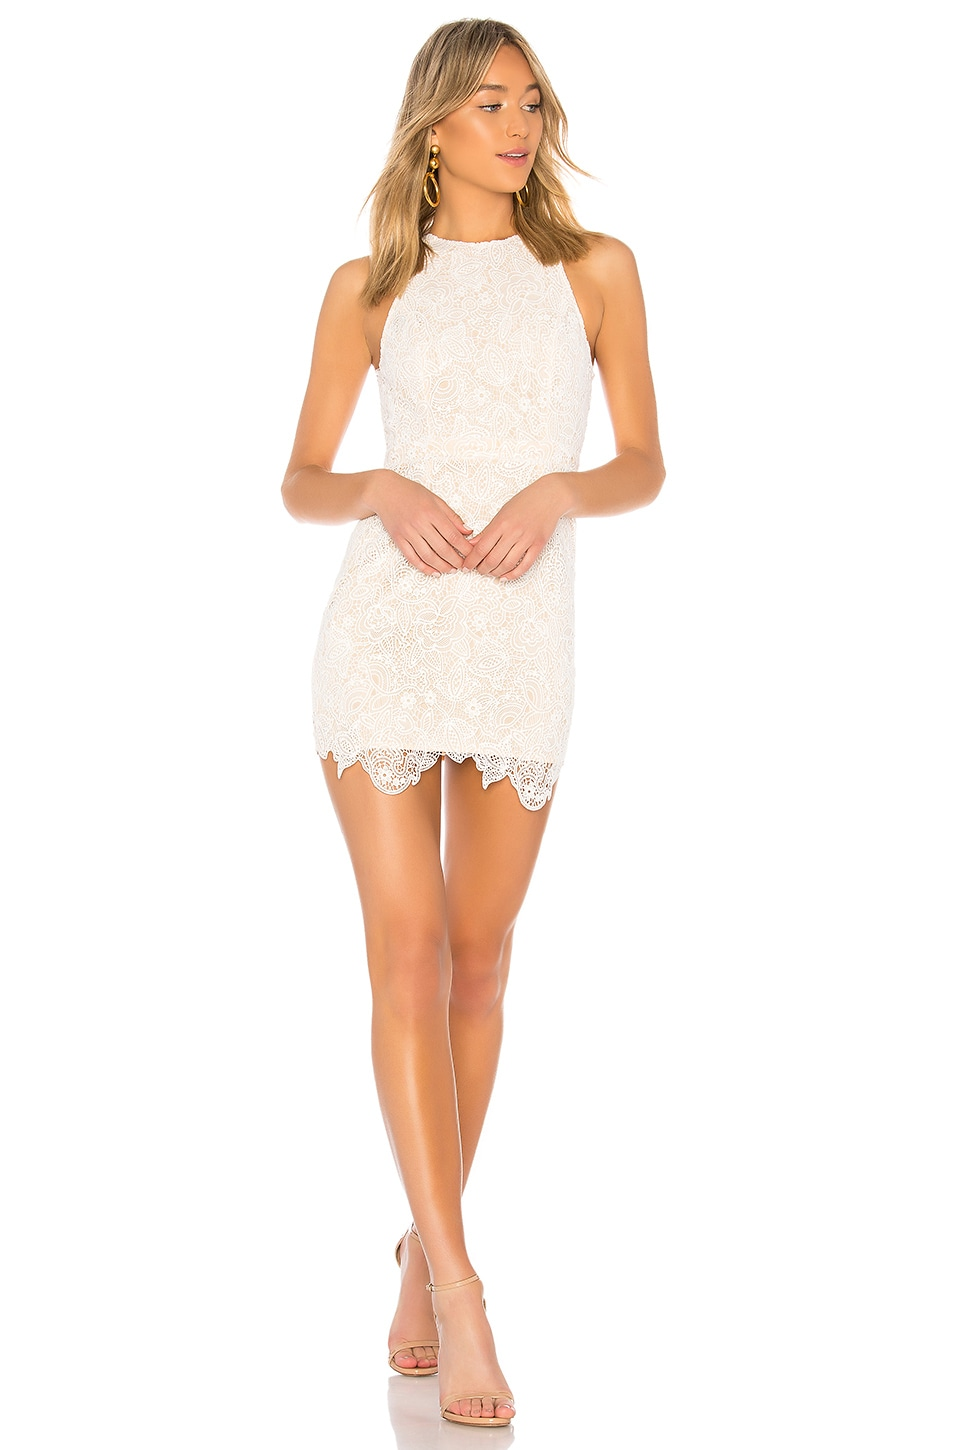 Patty High Neck Crochet Dress             superdown                                                                                                       CA$ 107.51 8